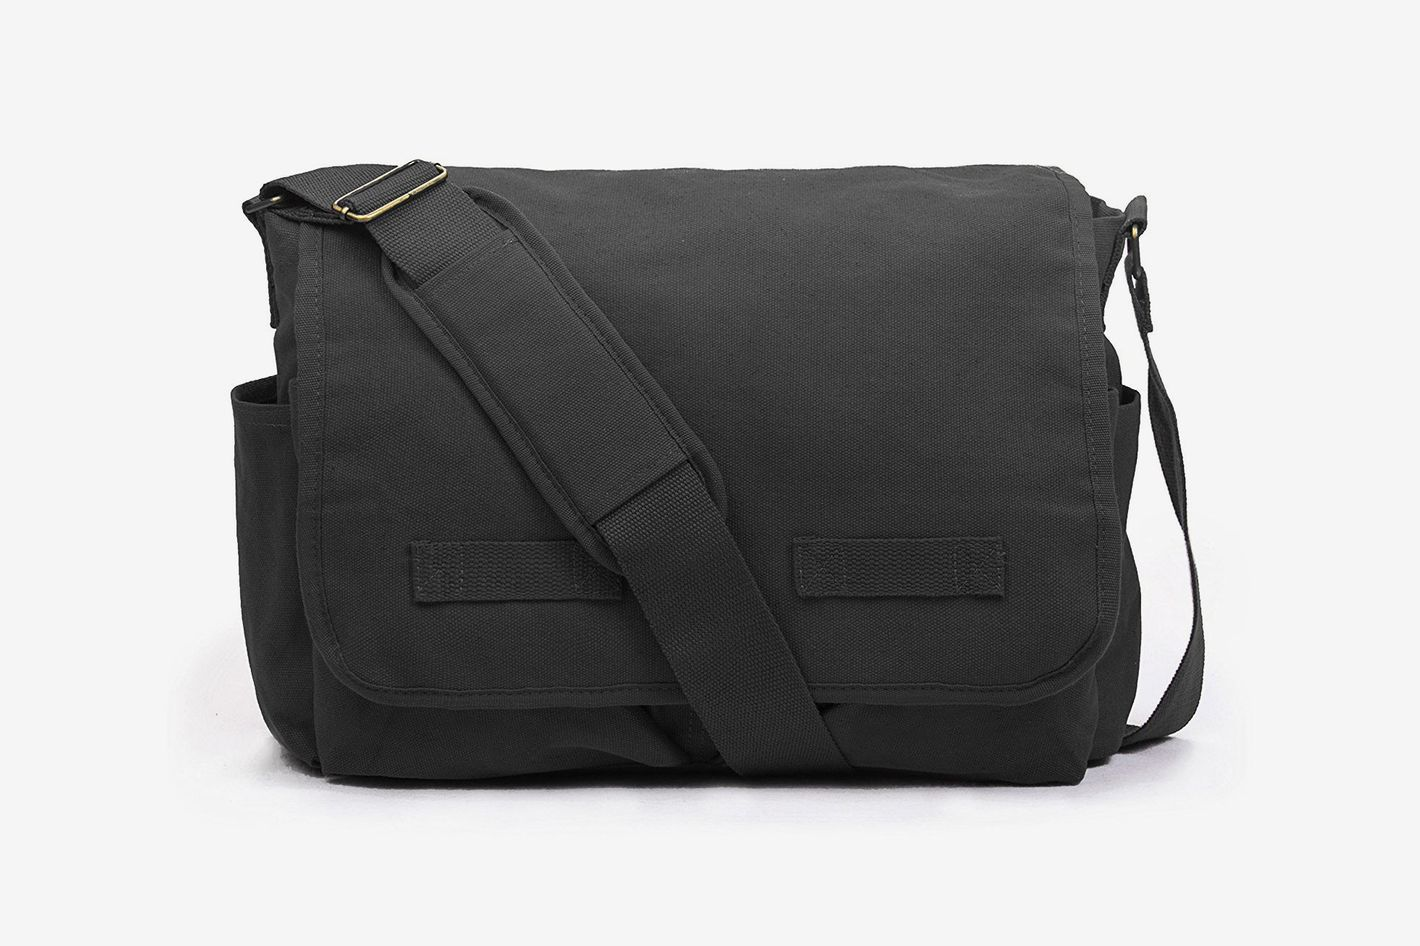 0776f470d0 11 Best Messenger Bags for Men 2018